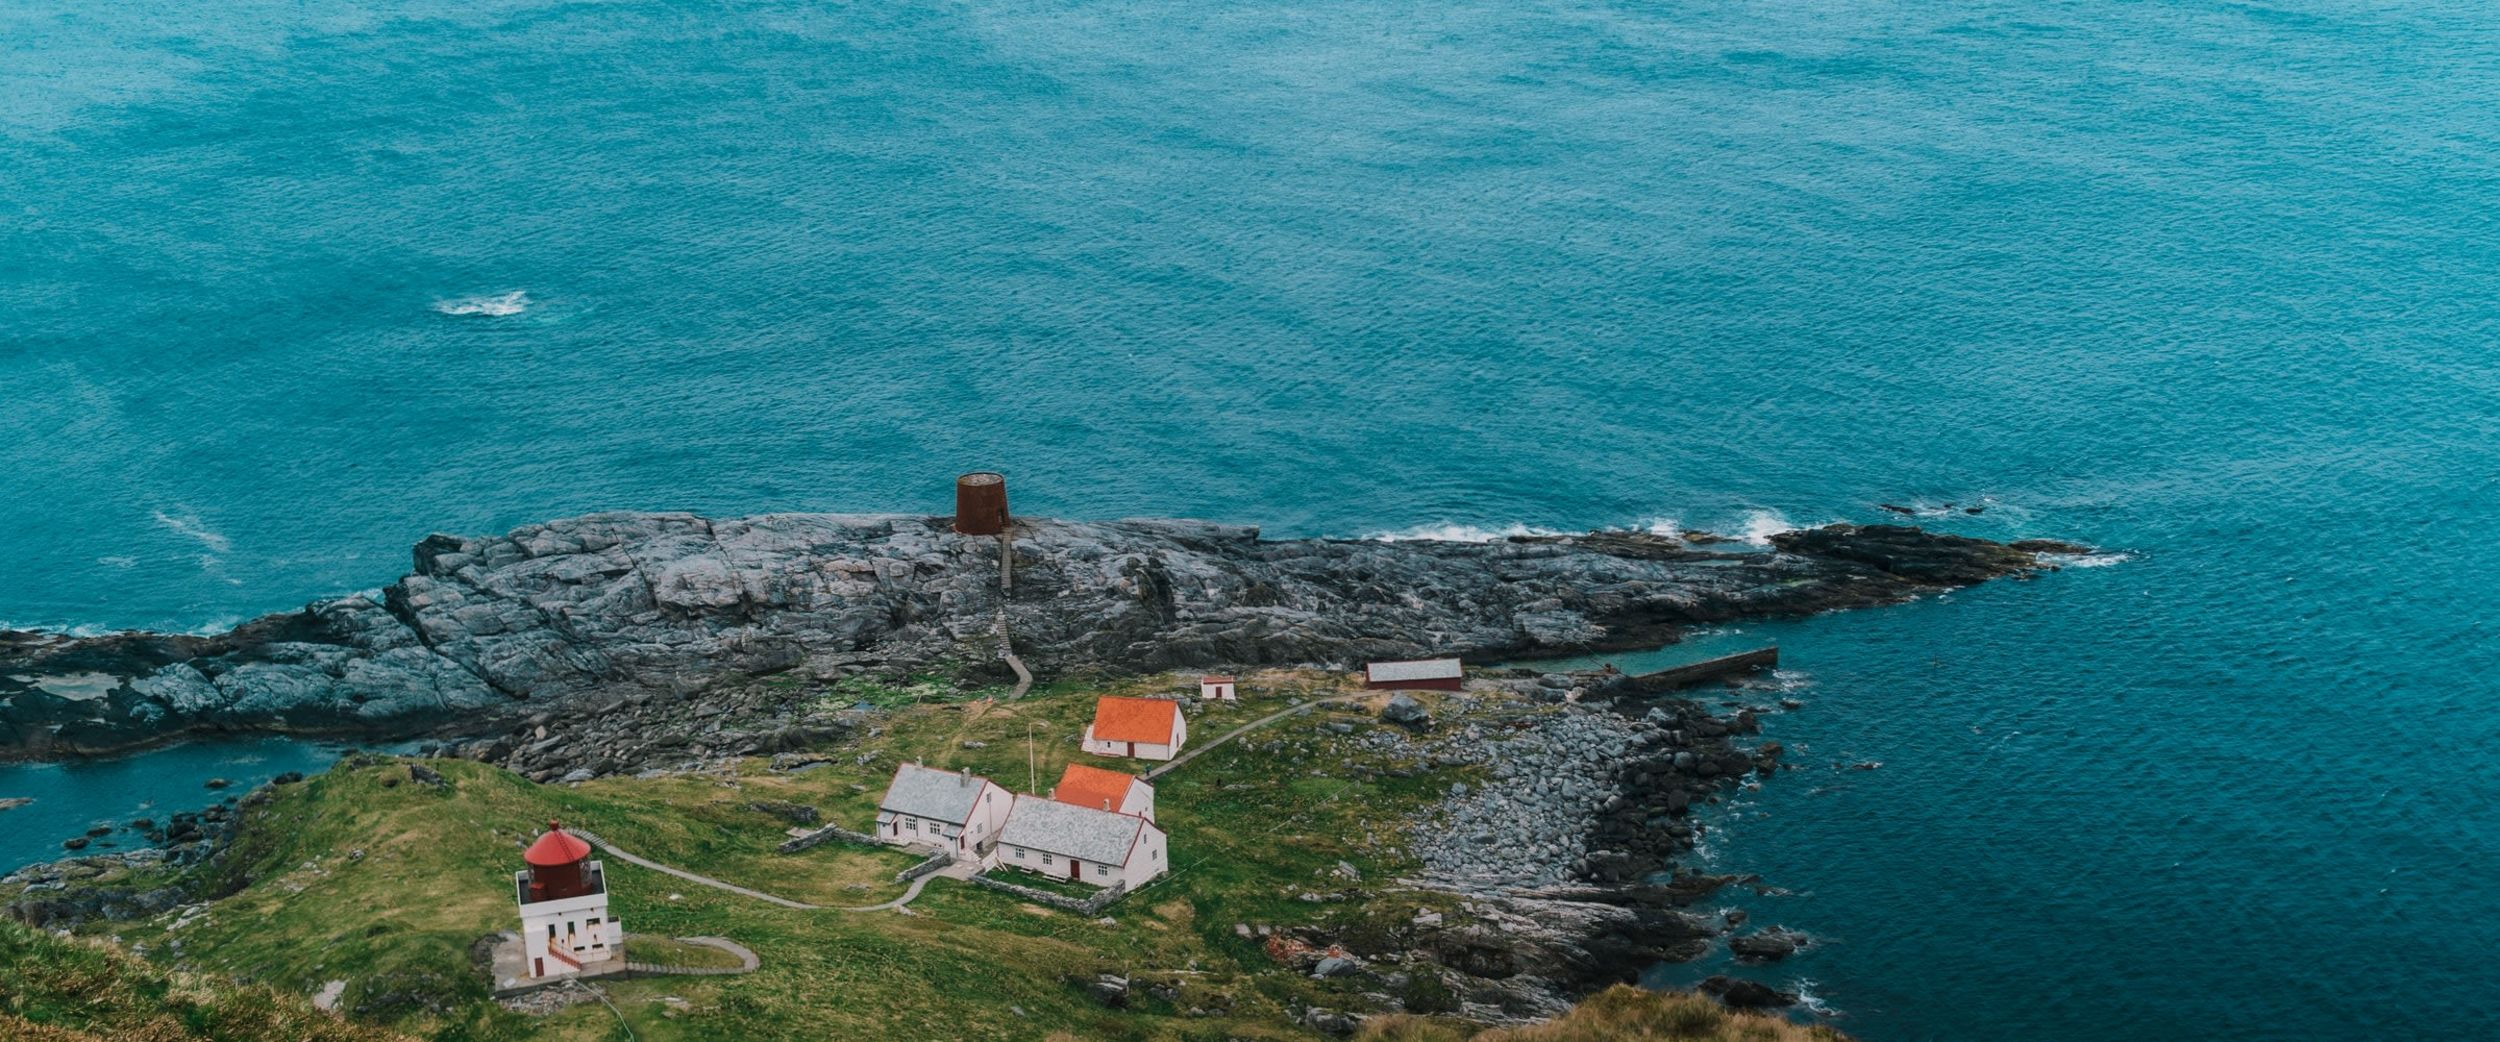 Runde light house, Photo: Torbjørn Sandbakk, Unsplash